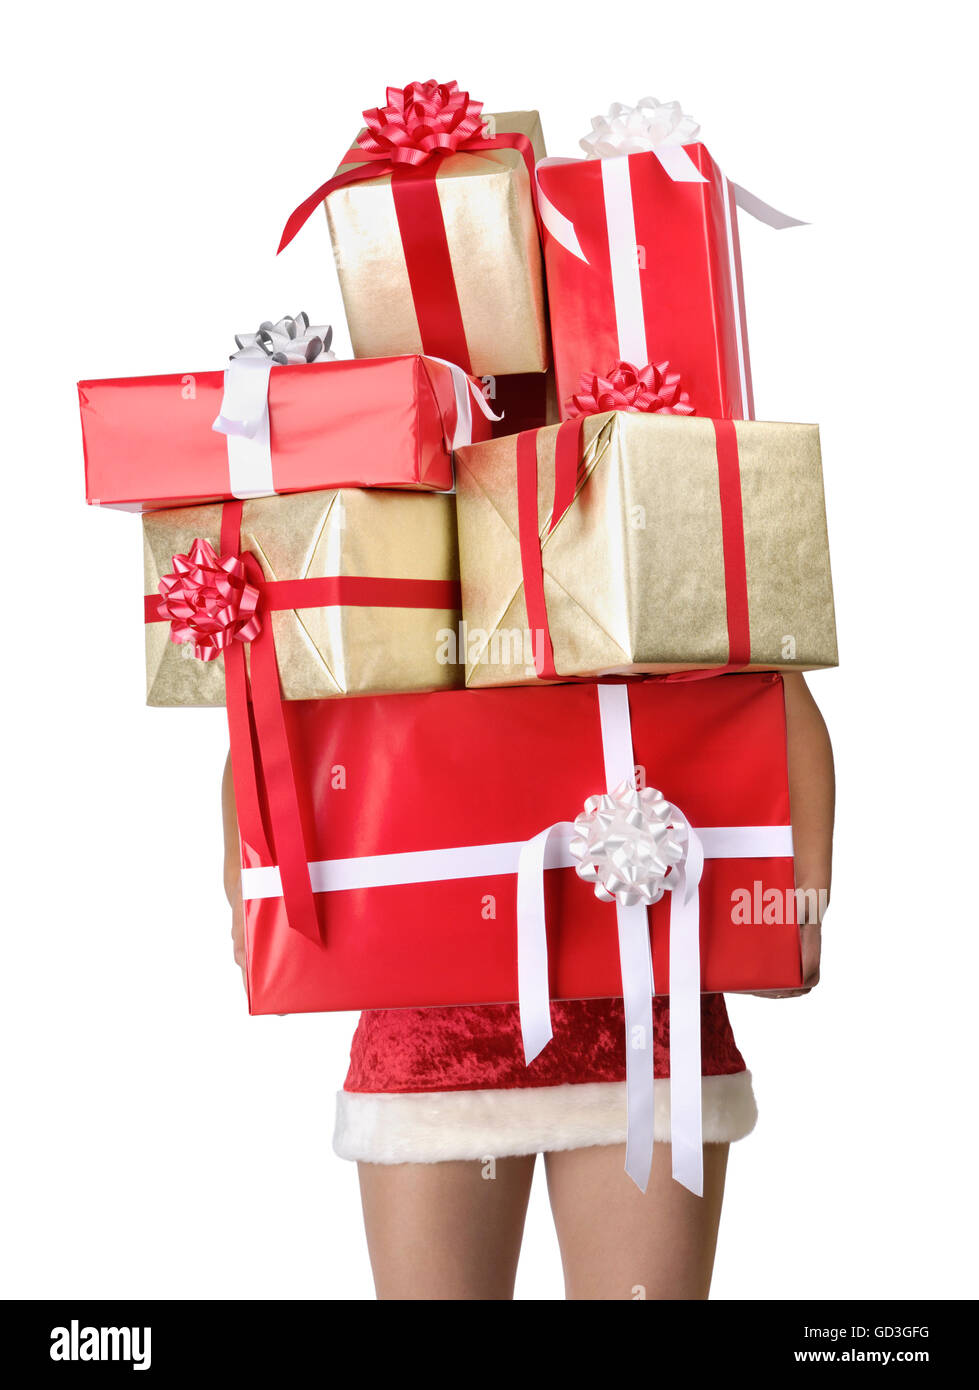 Woman with lots of Christmas gifts with only legs visible - Stock Image